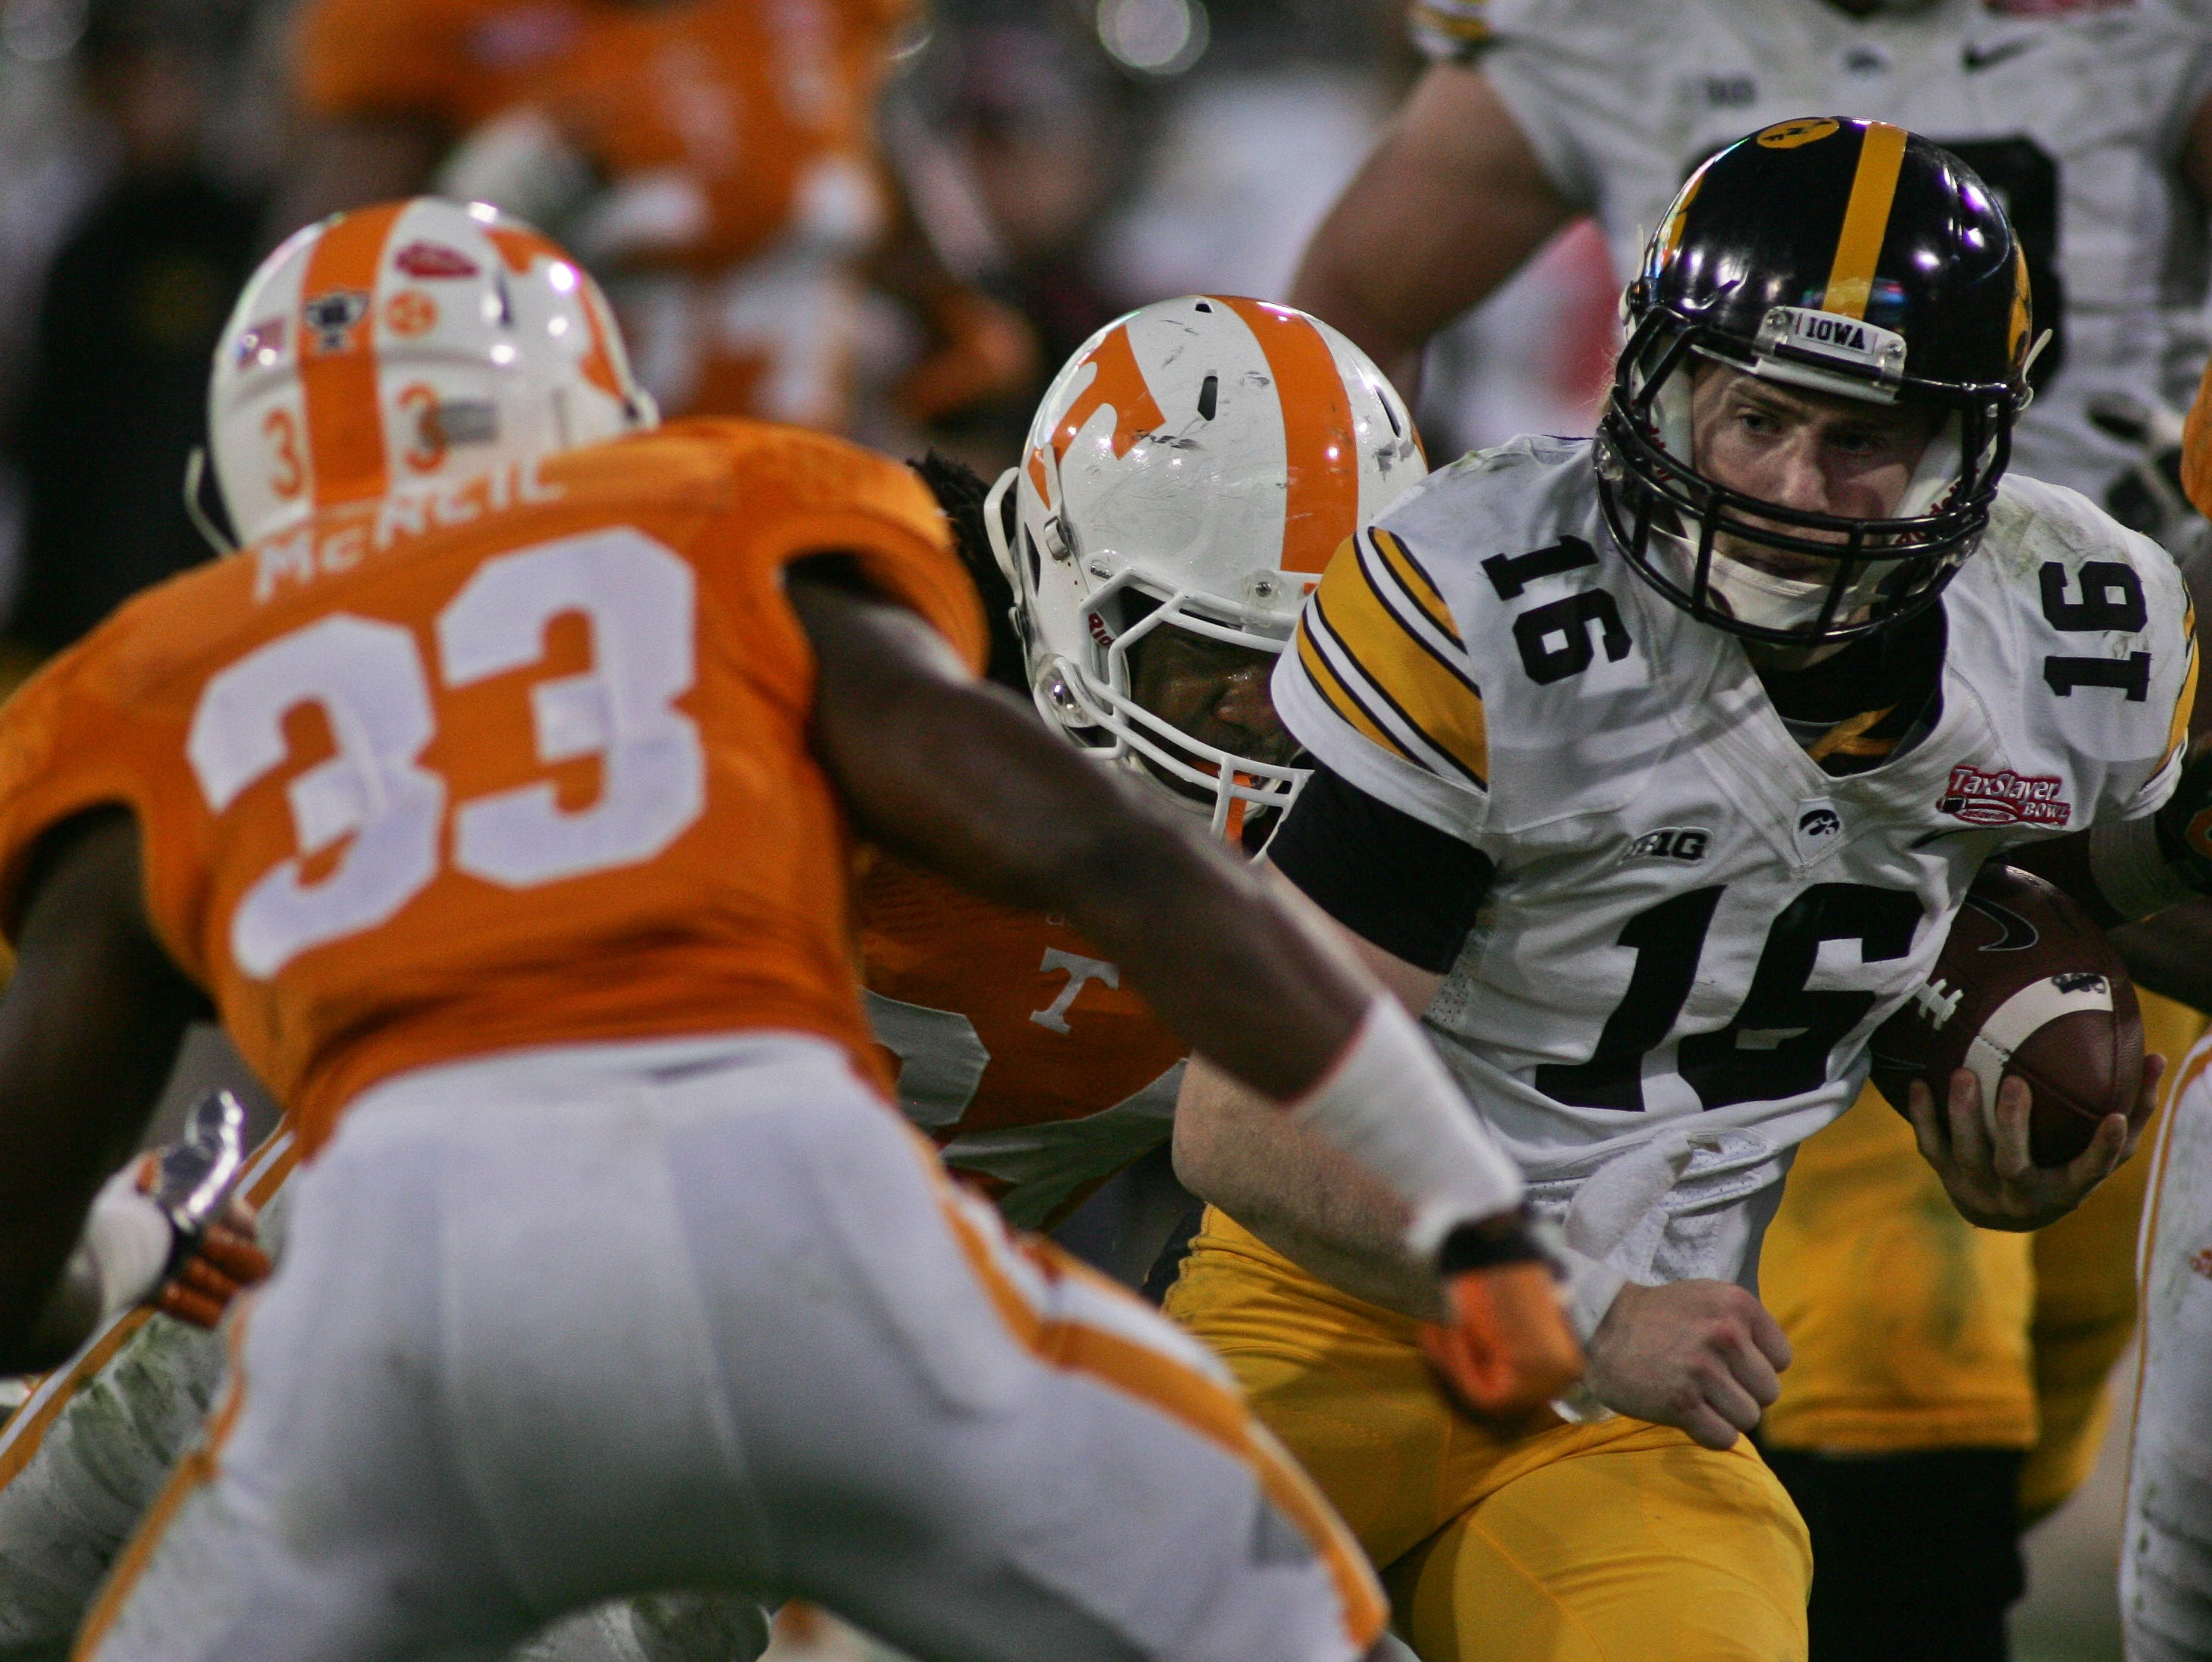 Jan 2, 2015; Jacksonville, FL, USA; Iowa Hawkeyes quarterback C.J. Beathard (16) runs for a first down as he tries to elude Tennessee Volunteers defensive back LaDarrell McNeil (33) in the third quarter of the 2015 TaxSlayer Bowl at EverBank Field. The Tennessee Volunteers beat the Iowa Hawkeyes 45-28. Mandatory Credit: Phil Sears-USA TODAY Sports